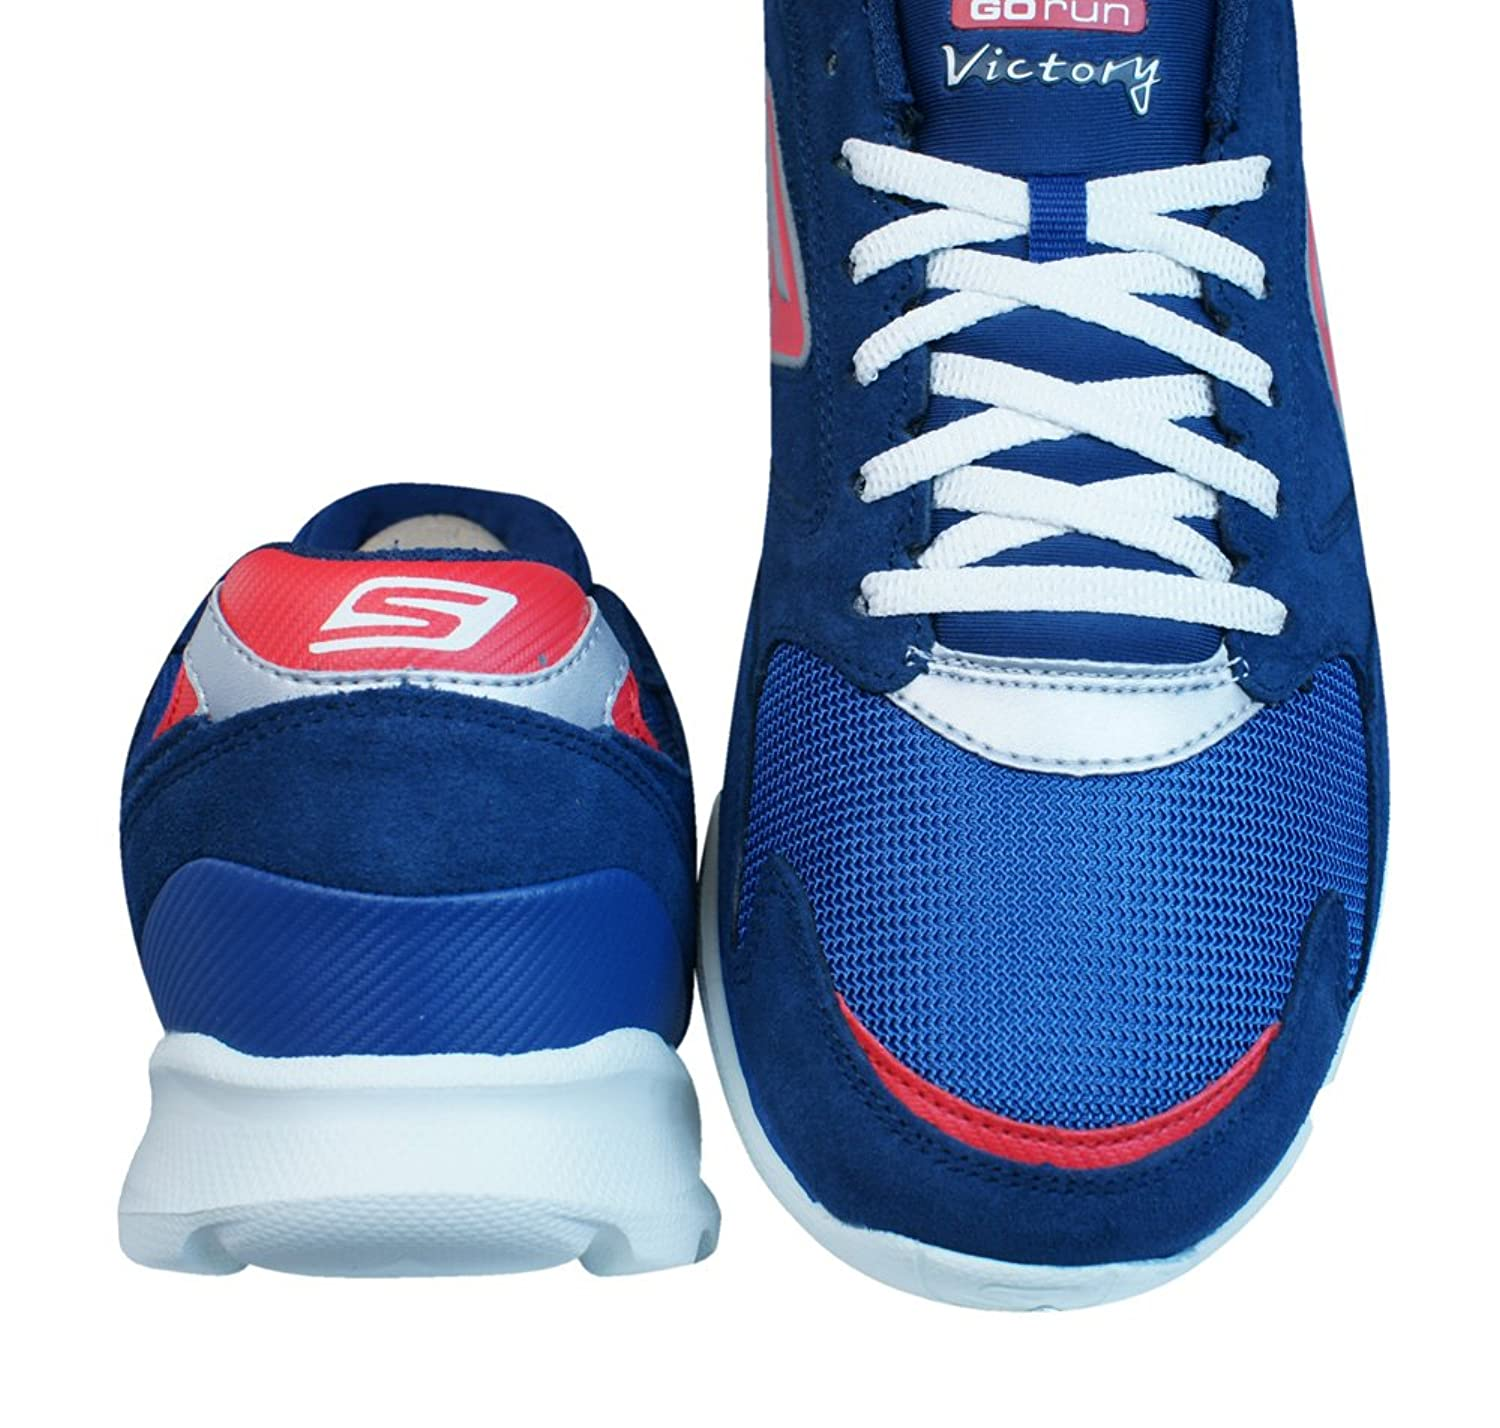 Skechers Go Run Sonic Victory Mens Running Trainers / Shoes: Amazon.co.uk:  Shoes & Bags